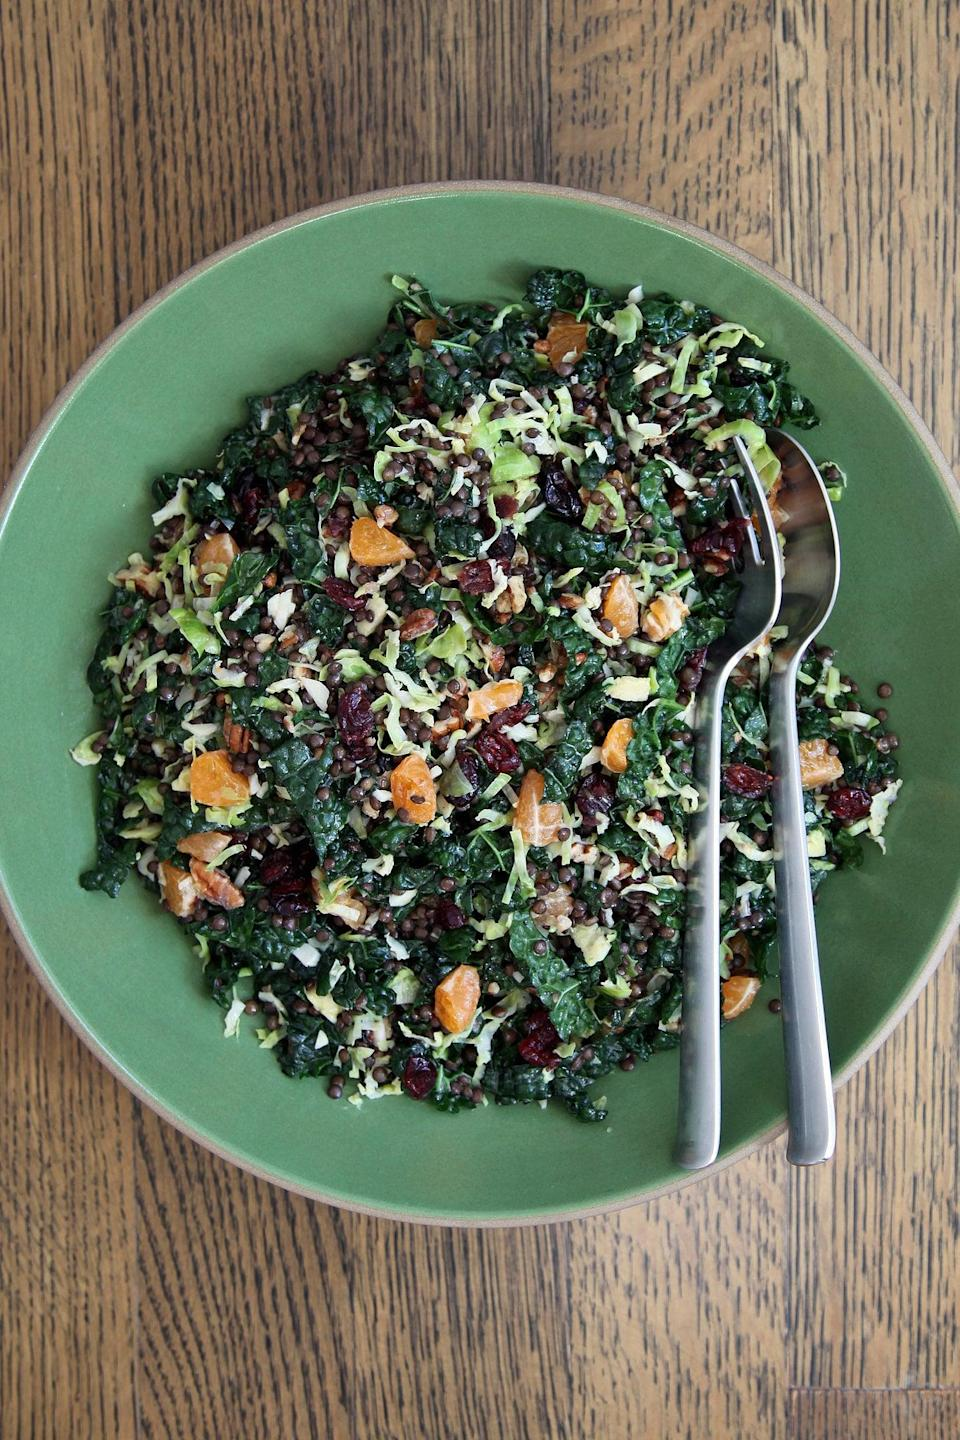 "<p>Fresh, light, and bright, this holiday salad will be a gift to your taste buds. Kale, brussels sprouts, and glossy black beluga lentils provide its wholesome base, while dried cranberries, toasted pecans, and clusters of clementine wedges are a festive nod to the season.</p> <p><strong>Get the recipe</strong>: <a href=""https://www.popsugar.com/food/Brussels-Sprout-Lentil-Kale-Salad-Cranberries-36058408"" class=""link rapid-noclick-resp"" rel=""nofollow noopener"" target=""_blank"" data-ylk=""slk:brussels sprout, beluga lentil, and cranberry holiday salad"">brussels sprout, beluga lentil, and cranberry holiday salad</a> </p>"